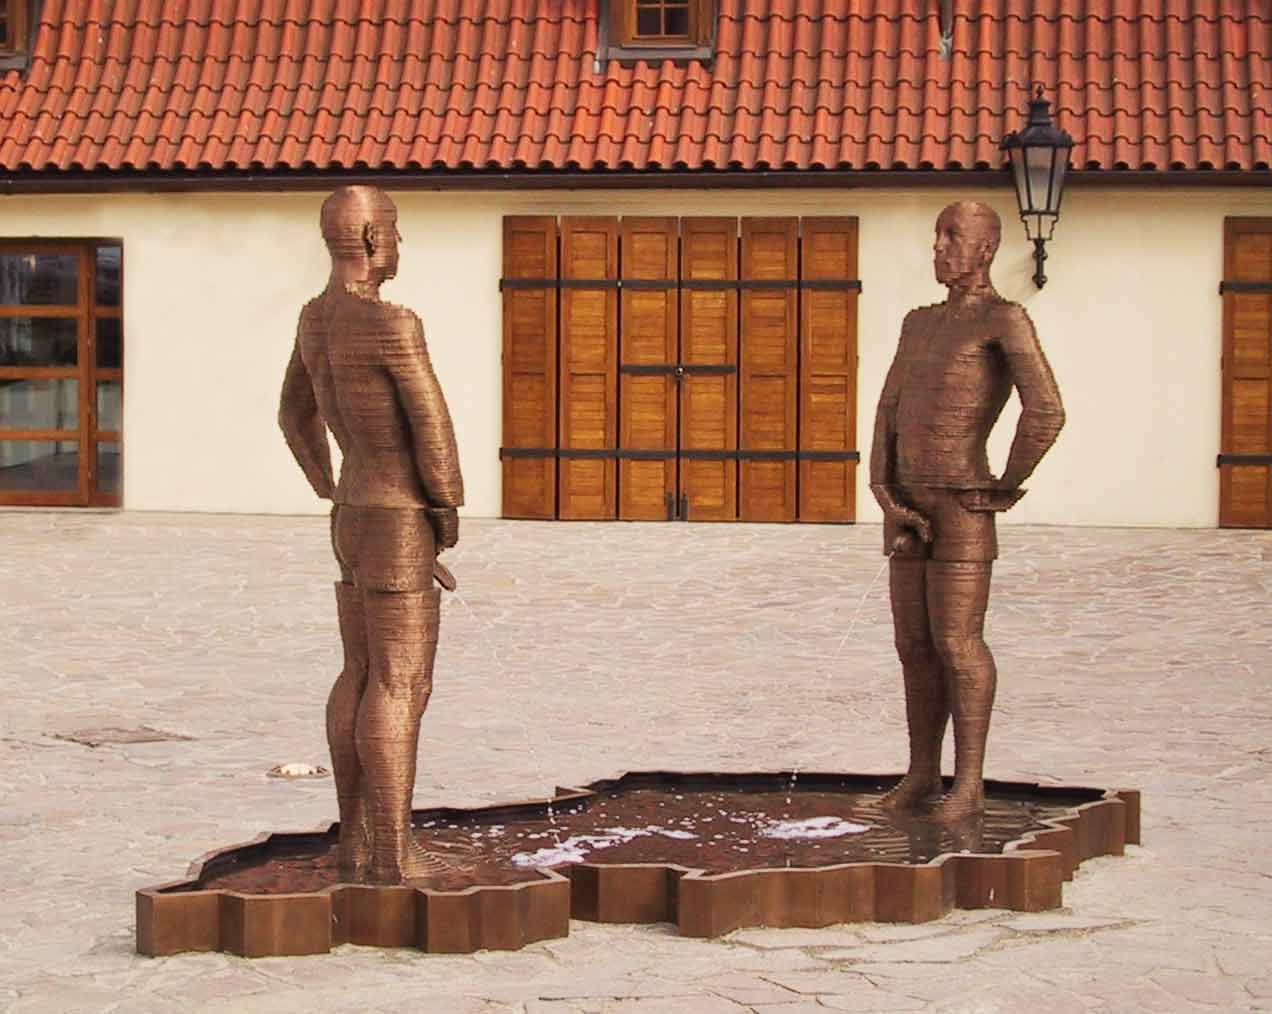 David Cerny Piss Statue Mala Strana Prague